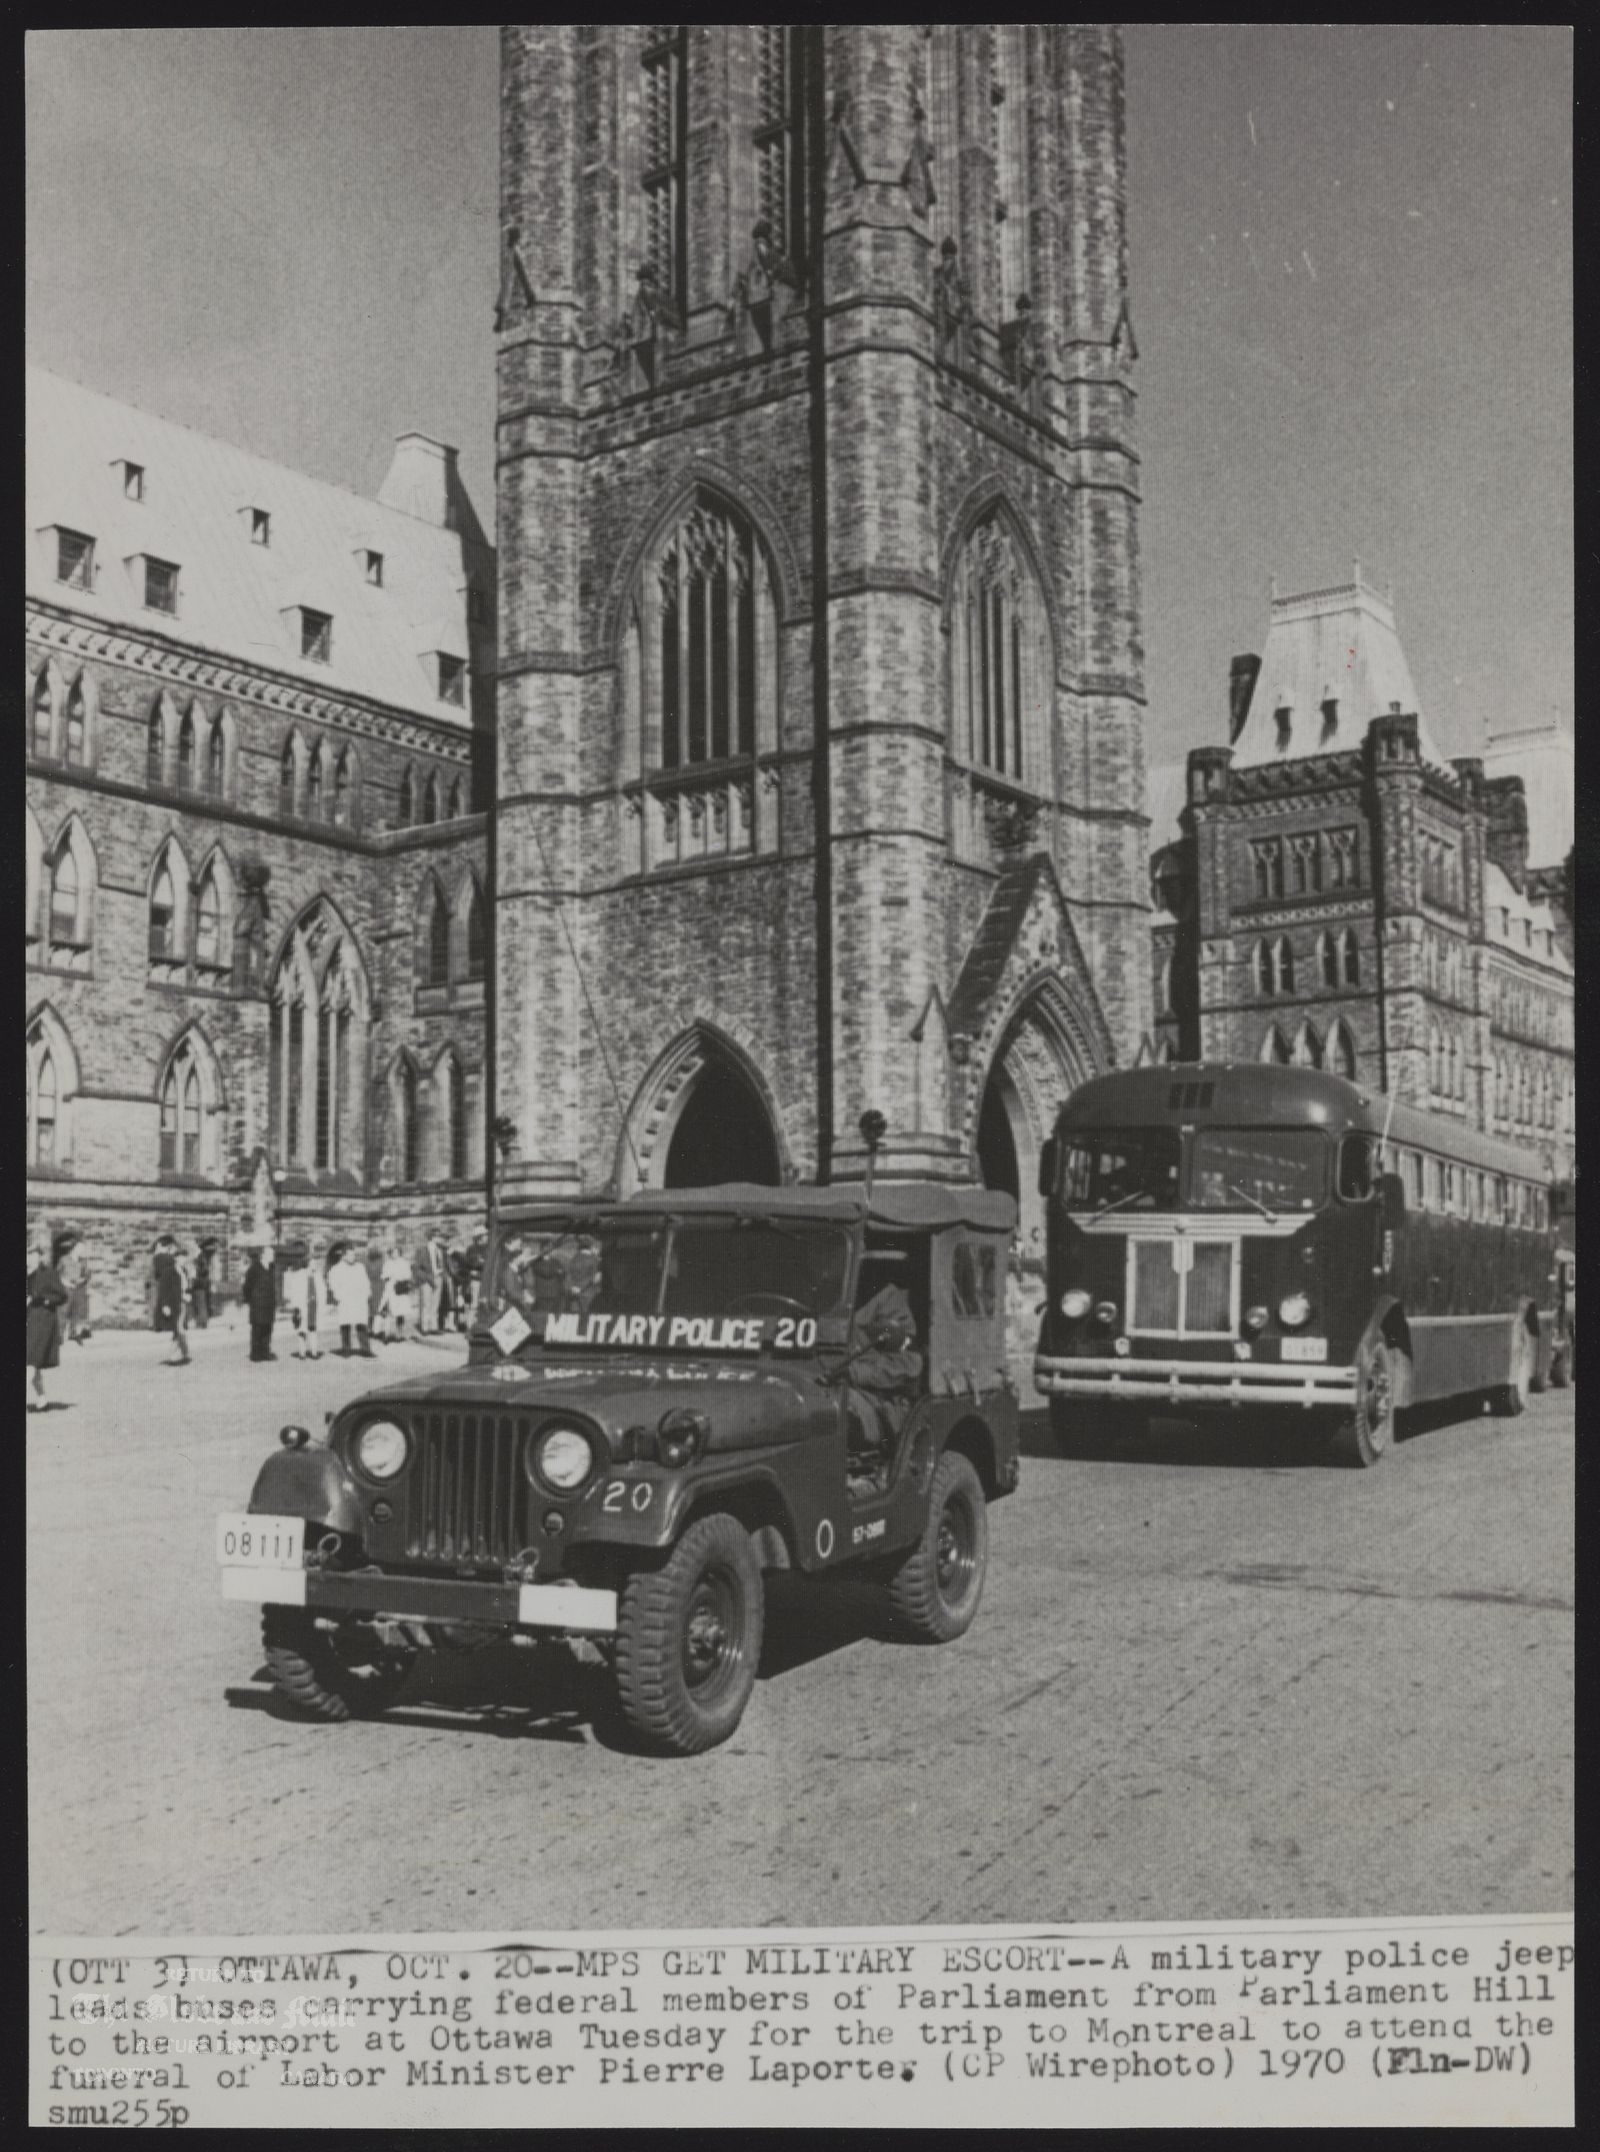 The notes transcribed from the back of this photograph are as follows: CANADA Security (OTT 51 0TTAWI7~0CT. 20--MPS GET MILITARY ESCORT—A military police jeep leads buses carrying federal members of Parliament from Parliament Hill to the airport at Ottawa Tuesday for the trip to Montreal to attend the funeral of Labor Minister Pierre Laporte. (CP Wirephoto) 1970 (Fln-DW) smu 255p